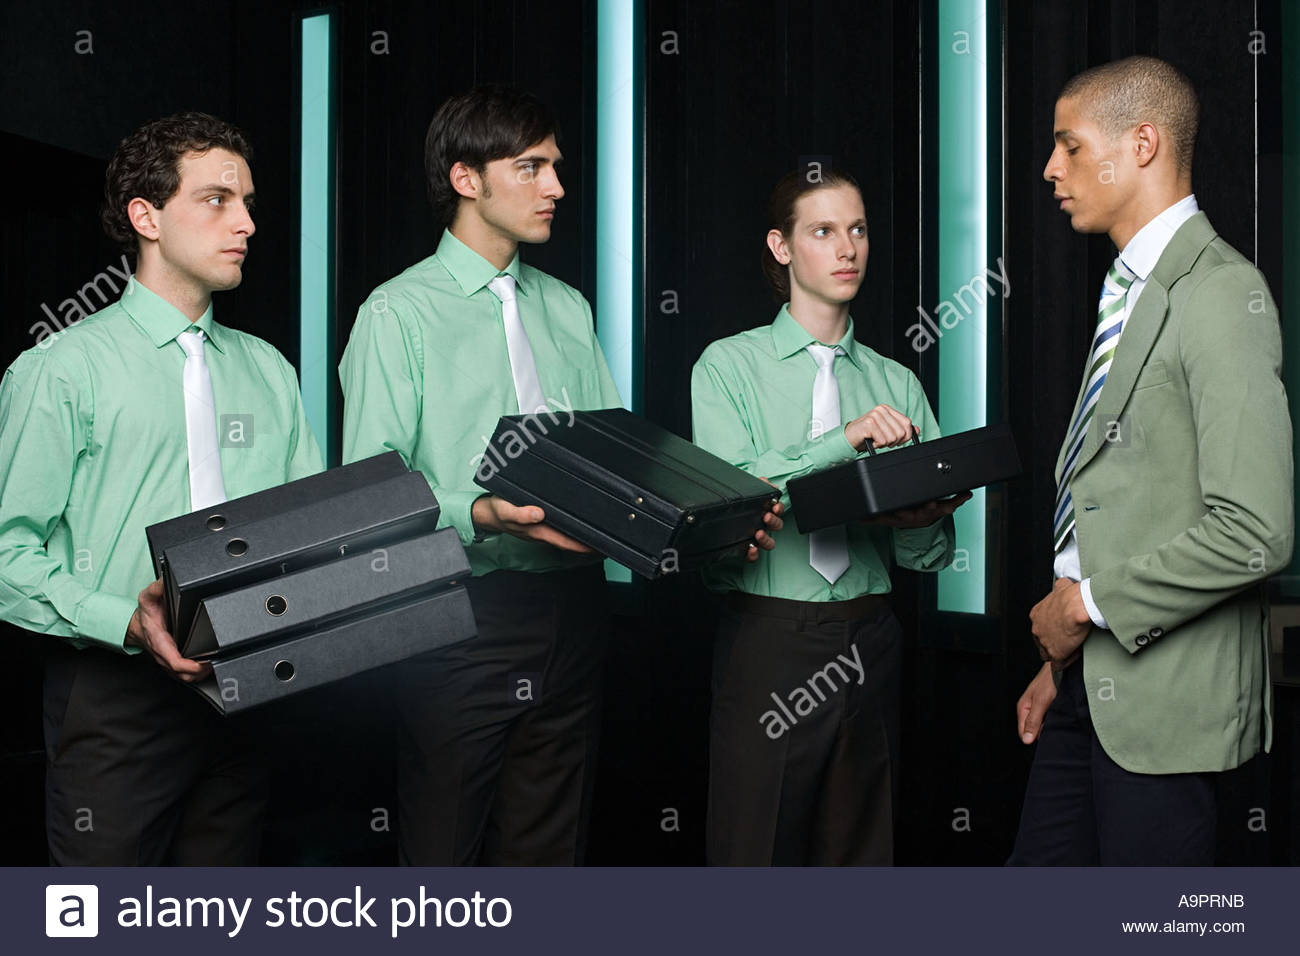 Office workers handing items to manager - Stock Image